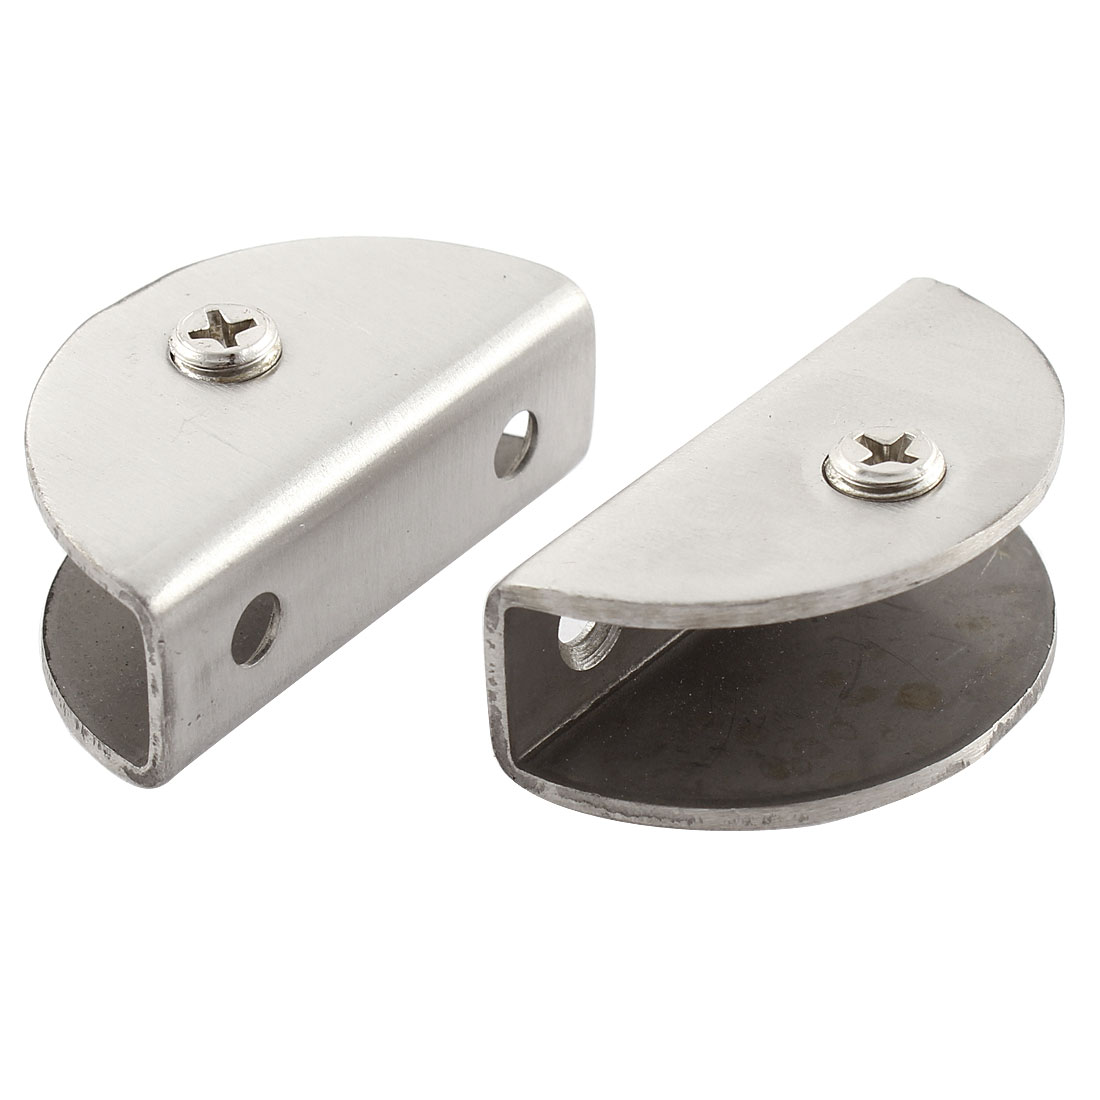 2 Pcs Stainless Steel Bracket Support Glass Clamp Clip 13mm Thickness